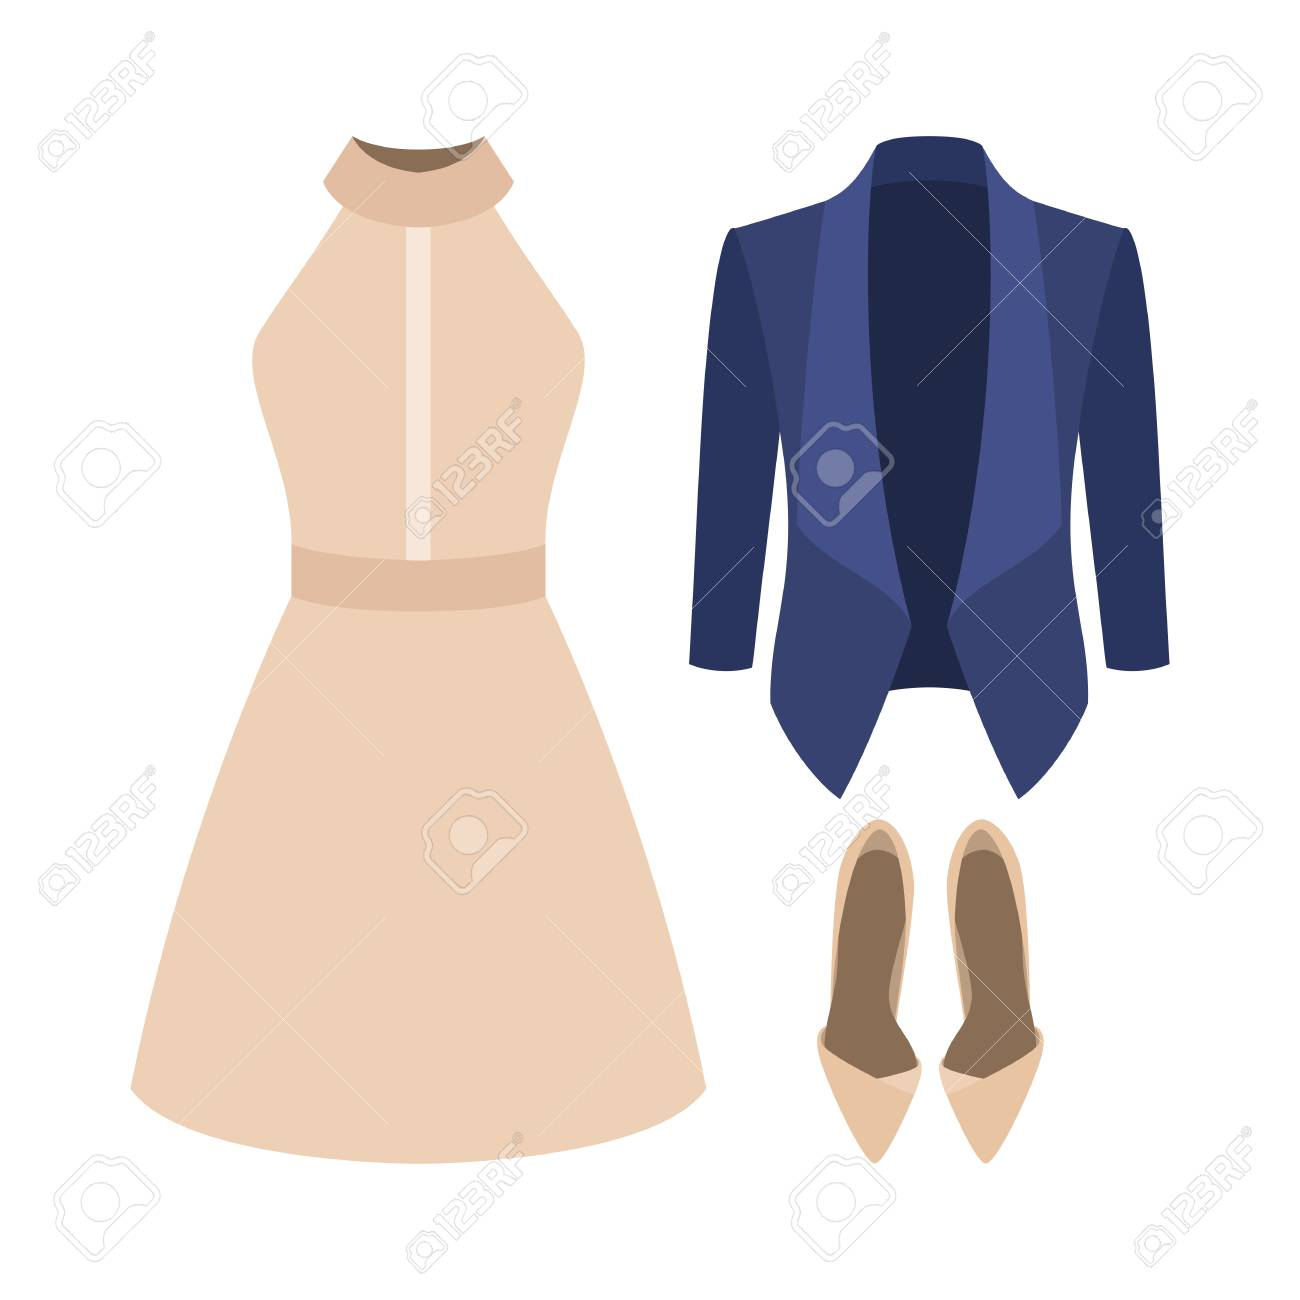 fa40a1b9c8de1 Set of trendy women's clothes. Outfit of woman jacket, dress and  accessories. Women's